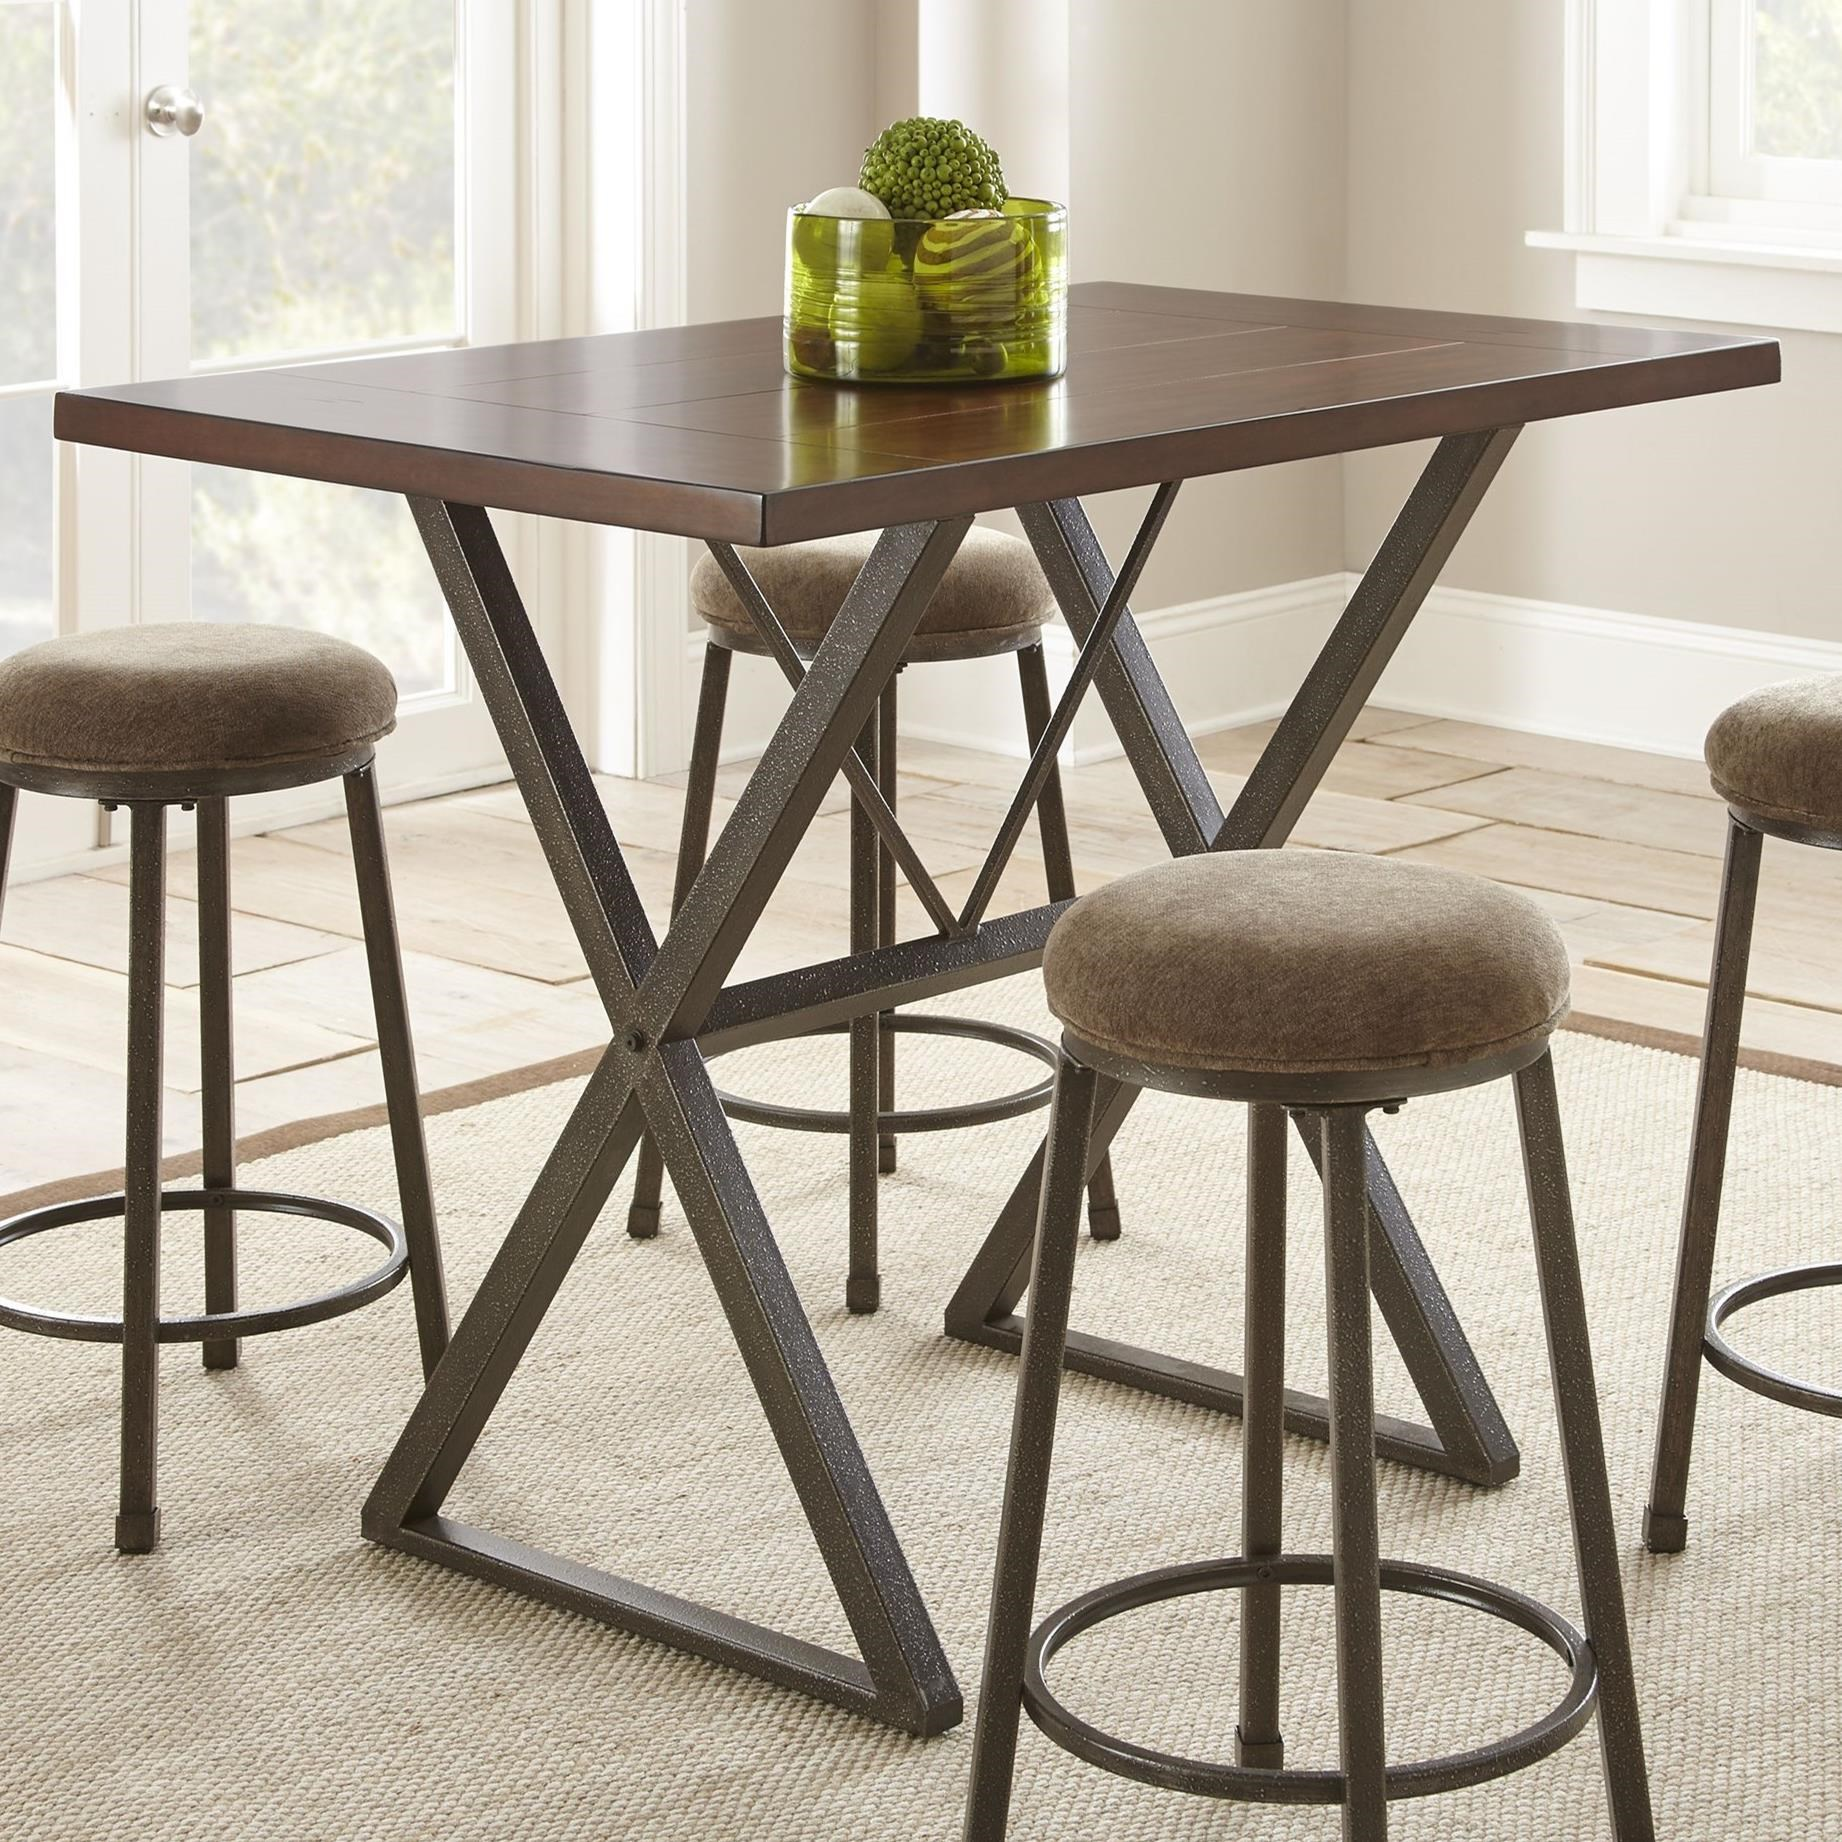 Ashley Furniture Omaha Ne: Steve Silver Omaha Industrial Counter Table With Metal